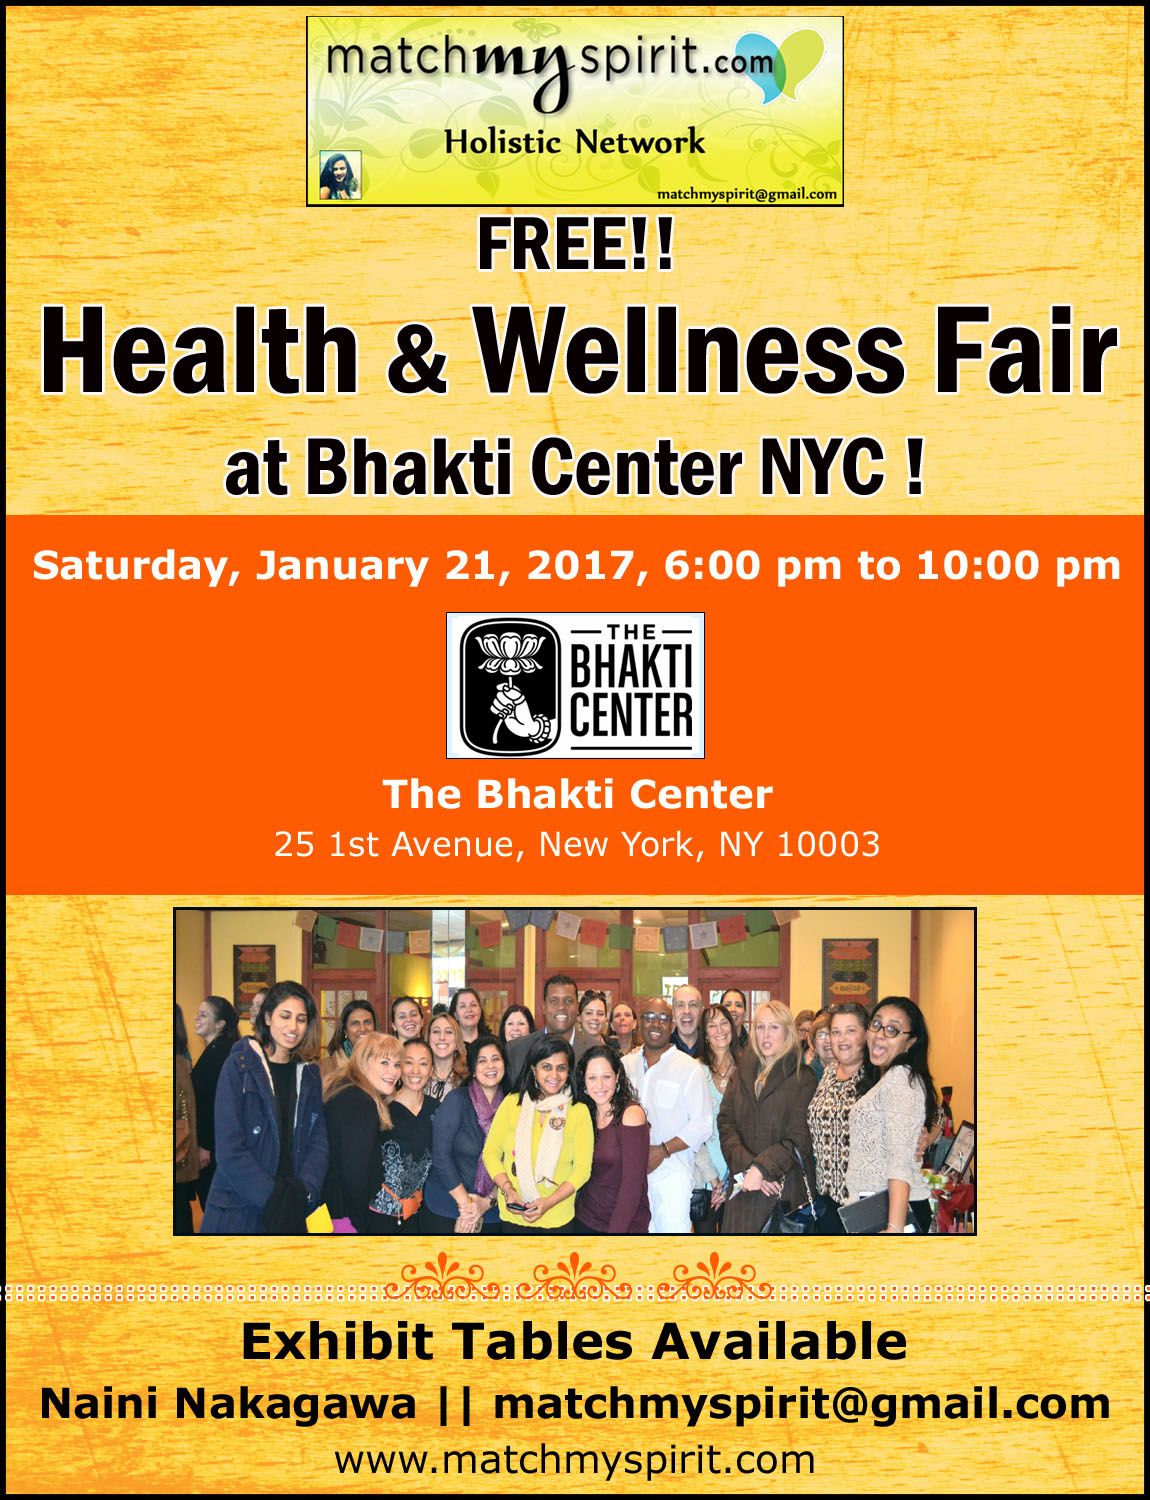 FREE!! Health & Wellness Fair at Bhakti Center NYC